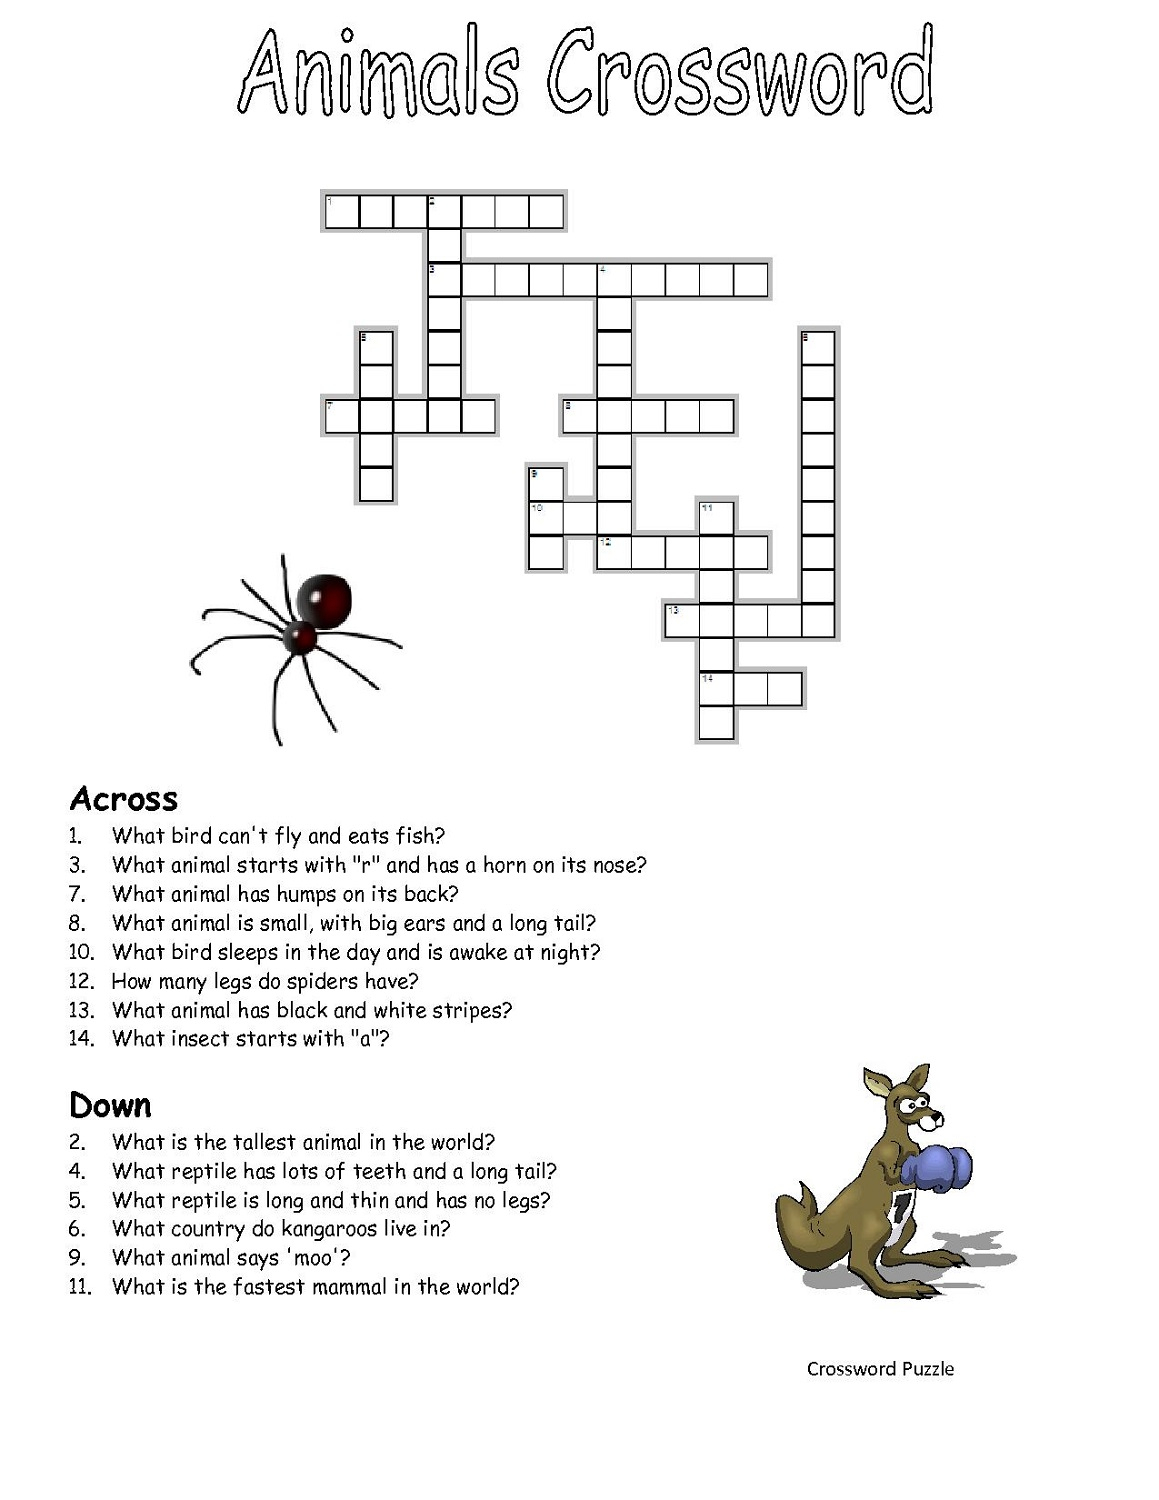 Printable Crosswords Puzzles Kids | Activity Shelter - Animal Crossword Puzzle Printable